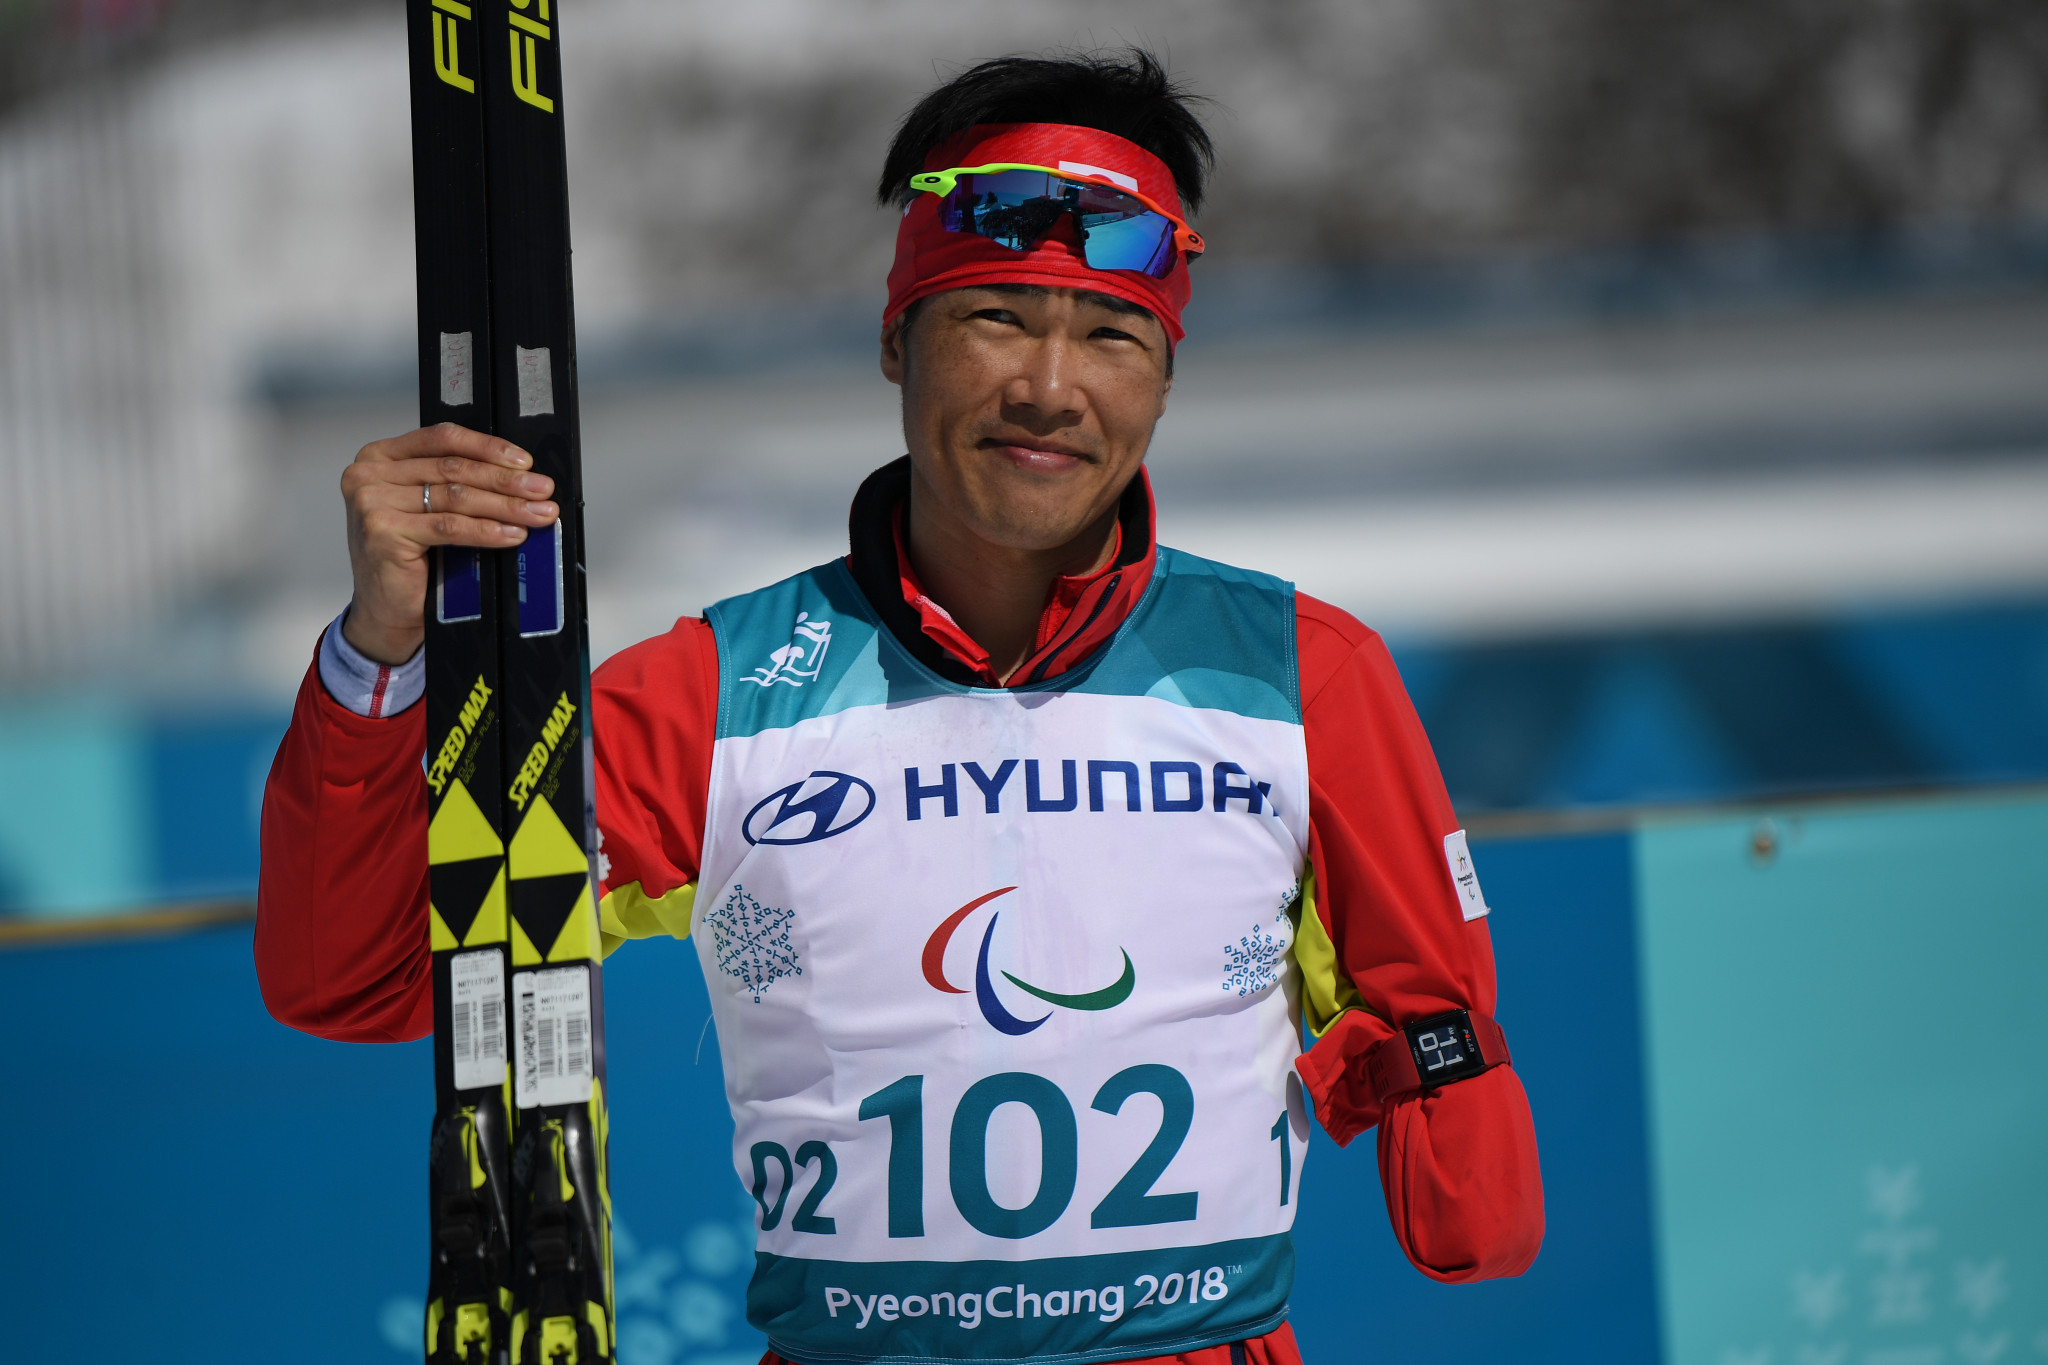 Yoshihiro Nitta won back the men's 10km standing title he originally won at Vancouver 2010 ©Getty Images